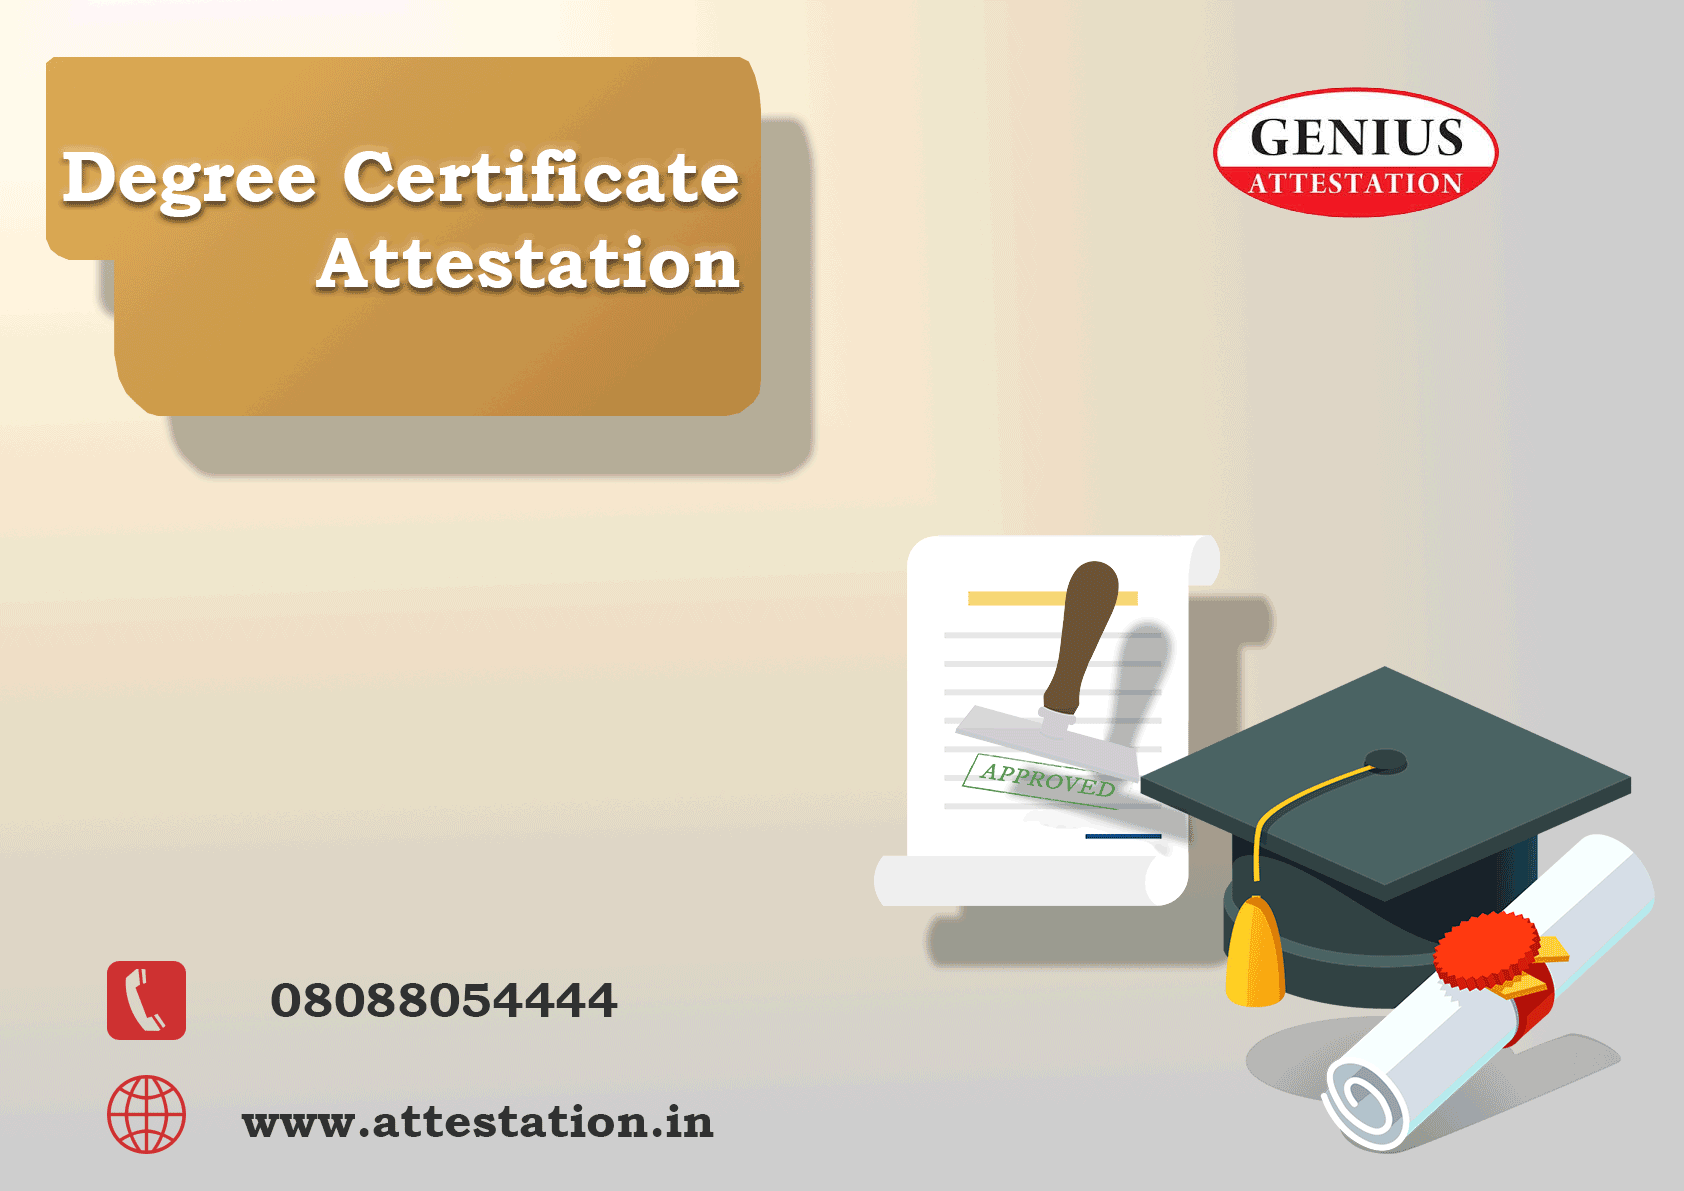 How To Get Degree Certificate Attestation By Genius Attestation Medium